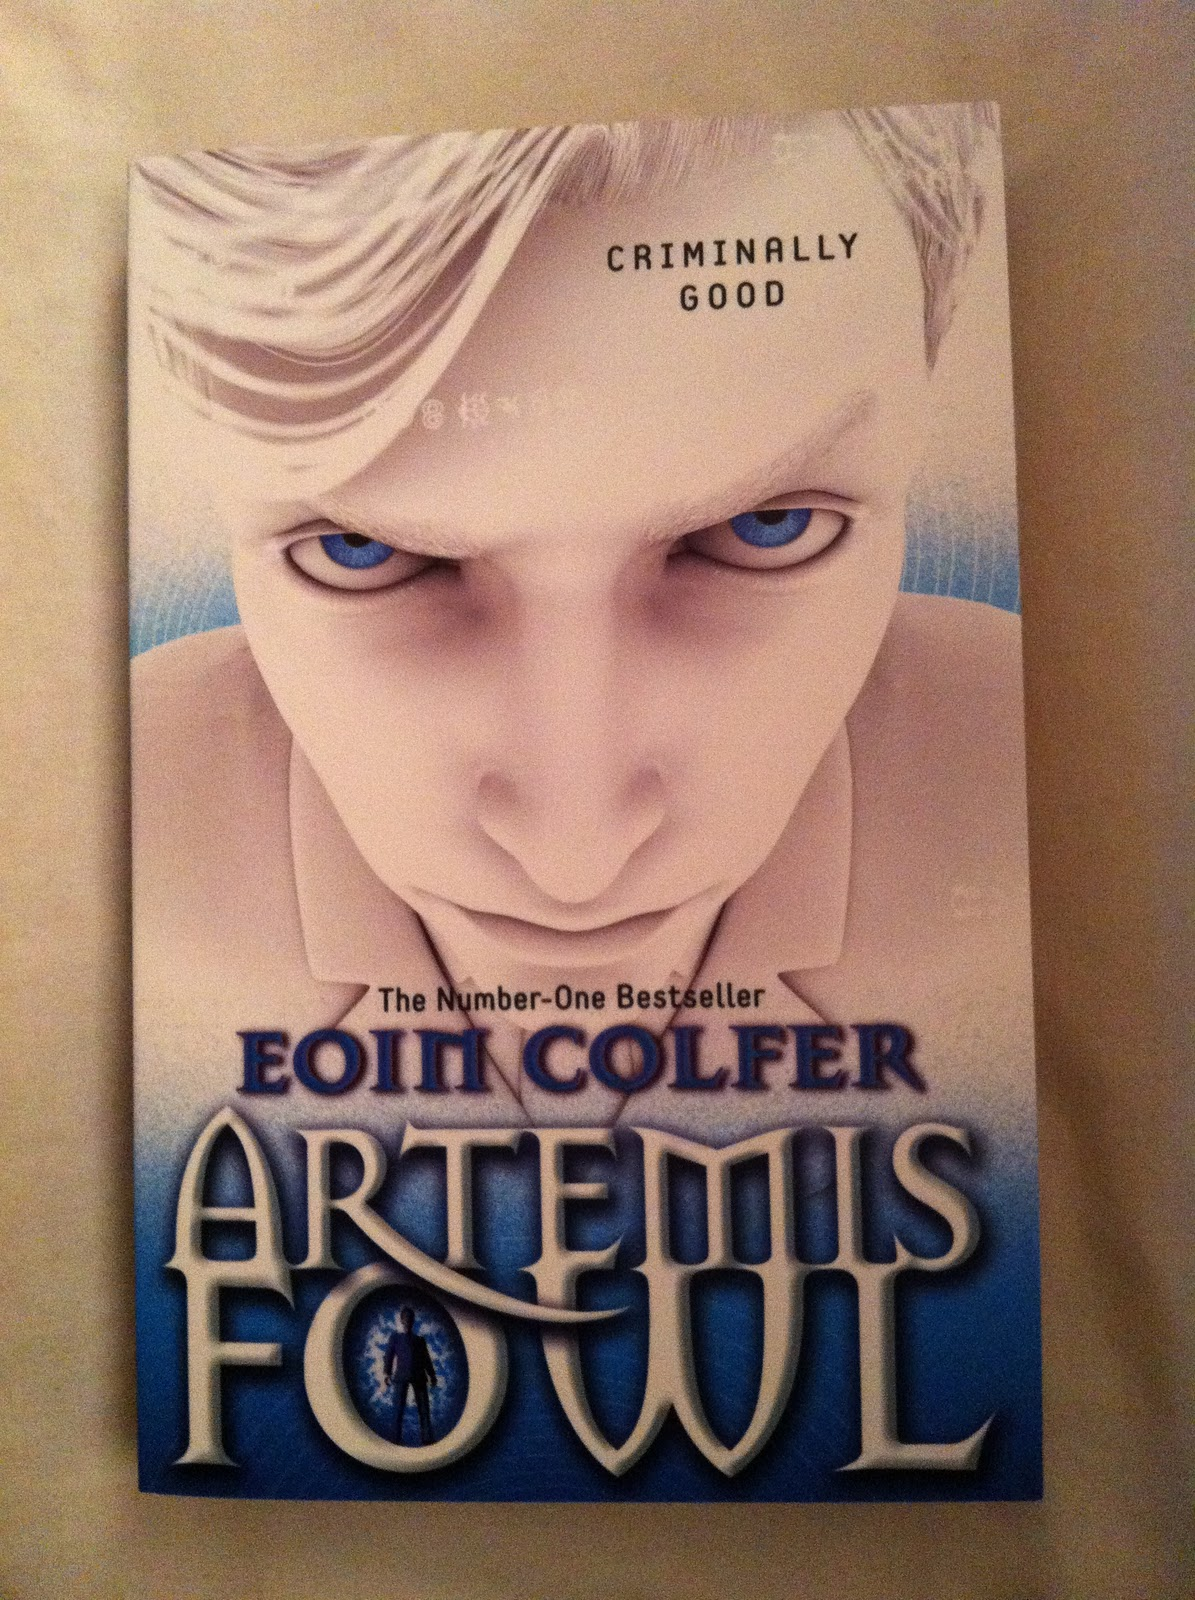 Lot 13 Artemis Fowl Series by Eoin Colfer WARP Airman Atlantis Complex L2